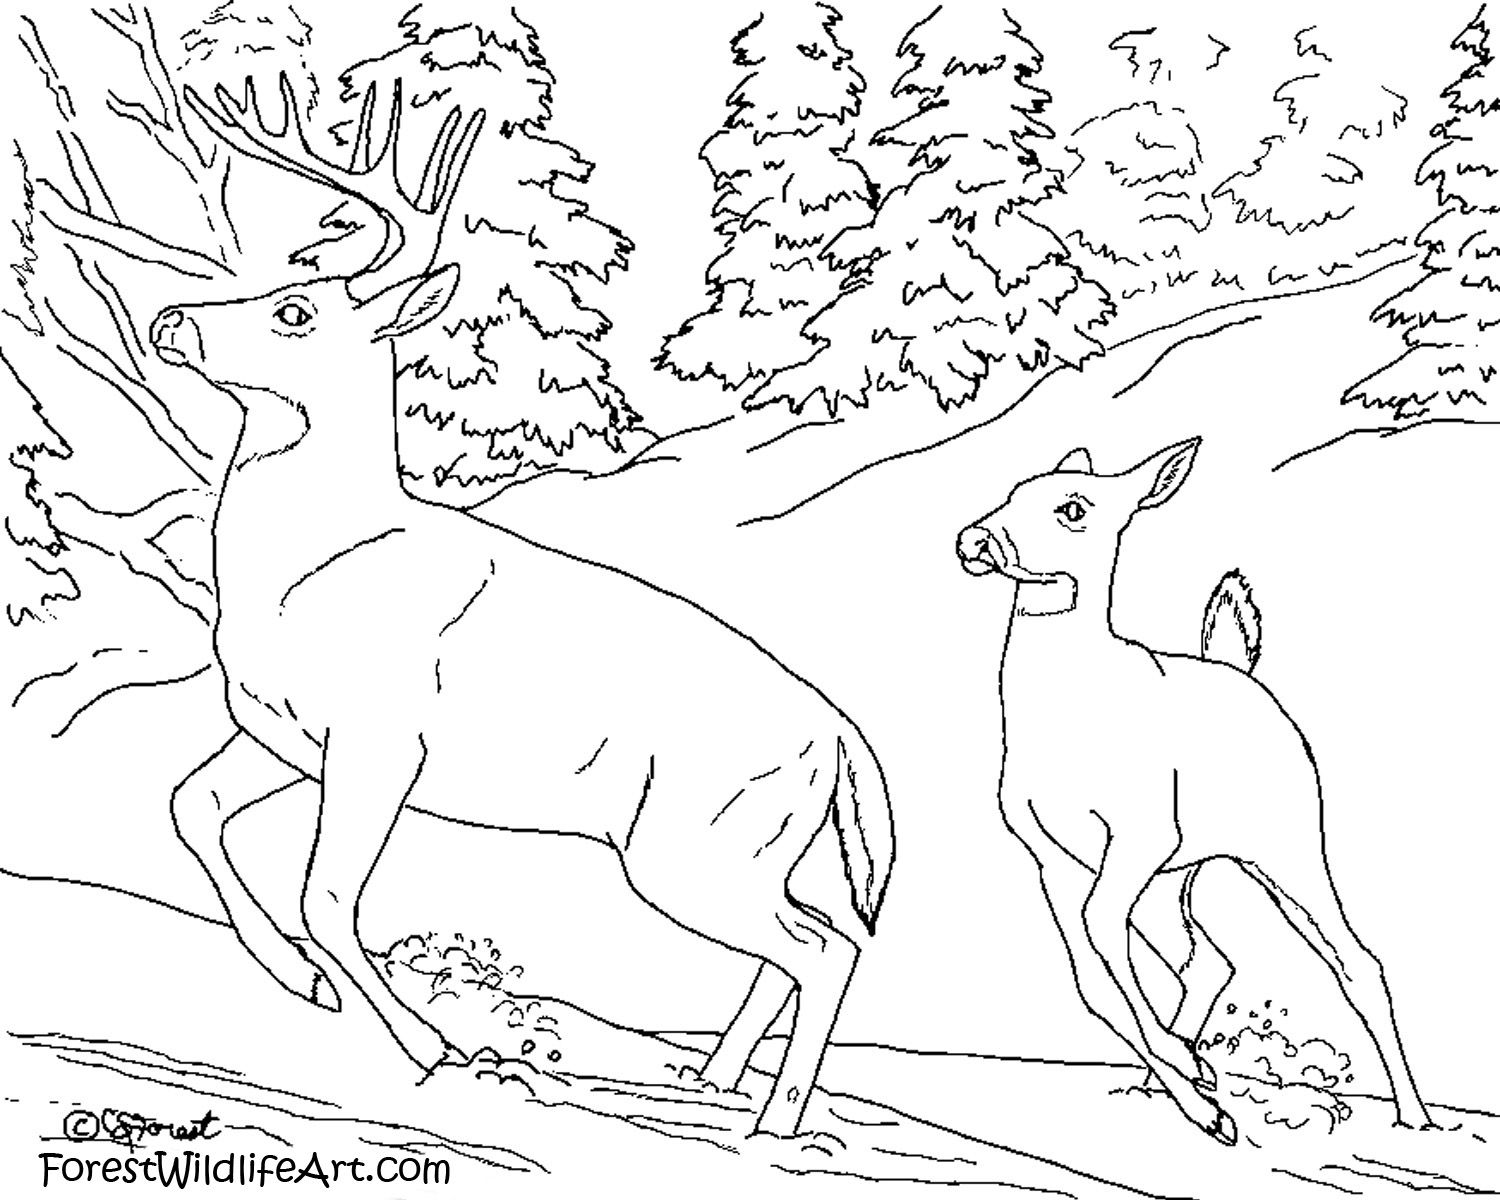 pictures that you can color and print out here is the original full color painting - Pictures You Can Color And Print